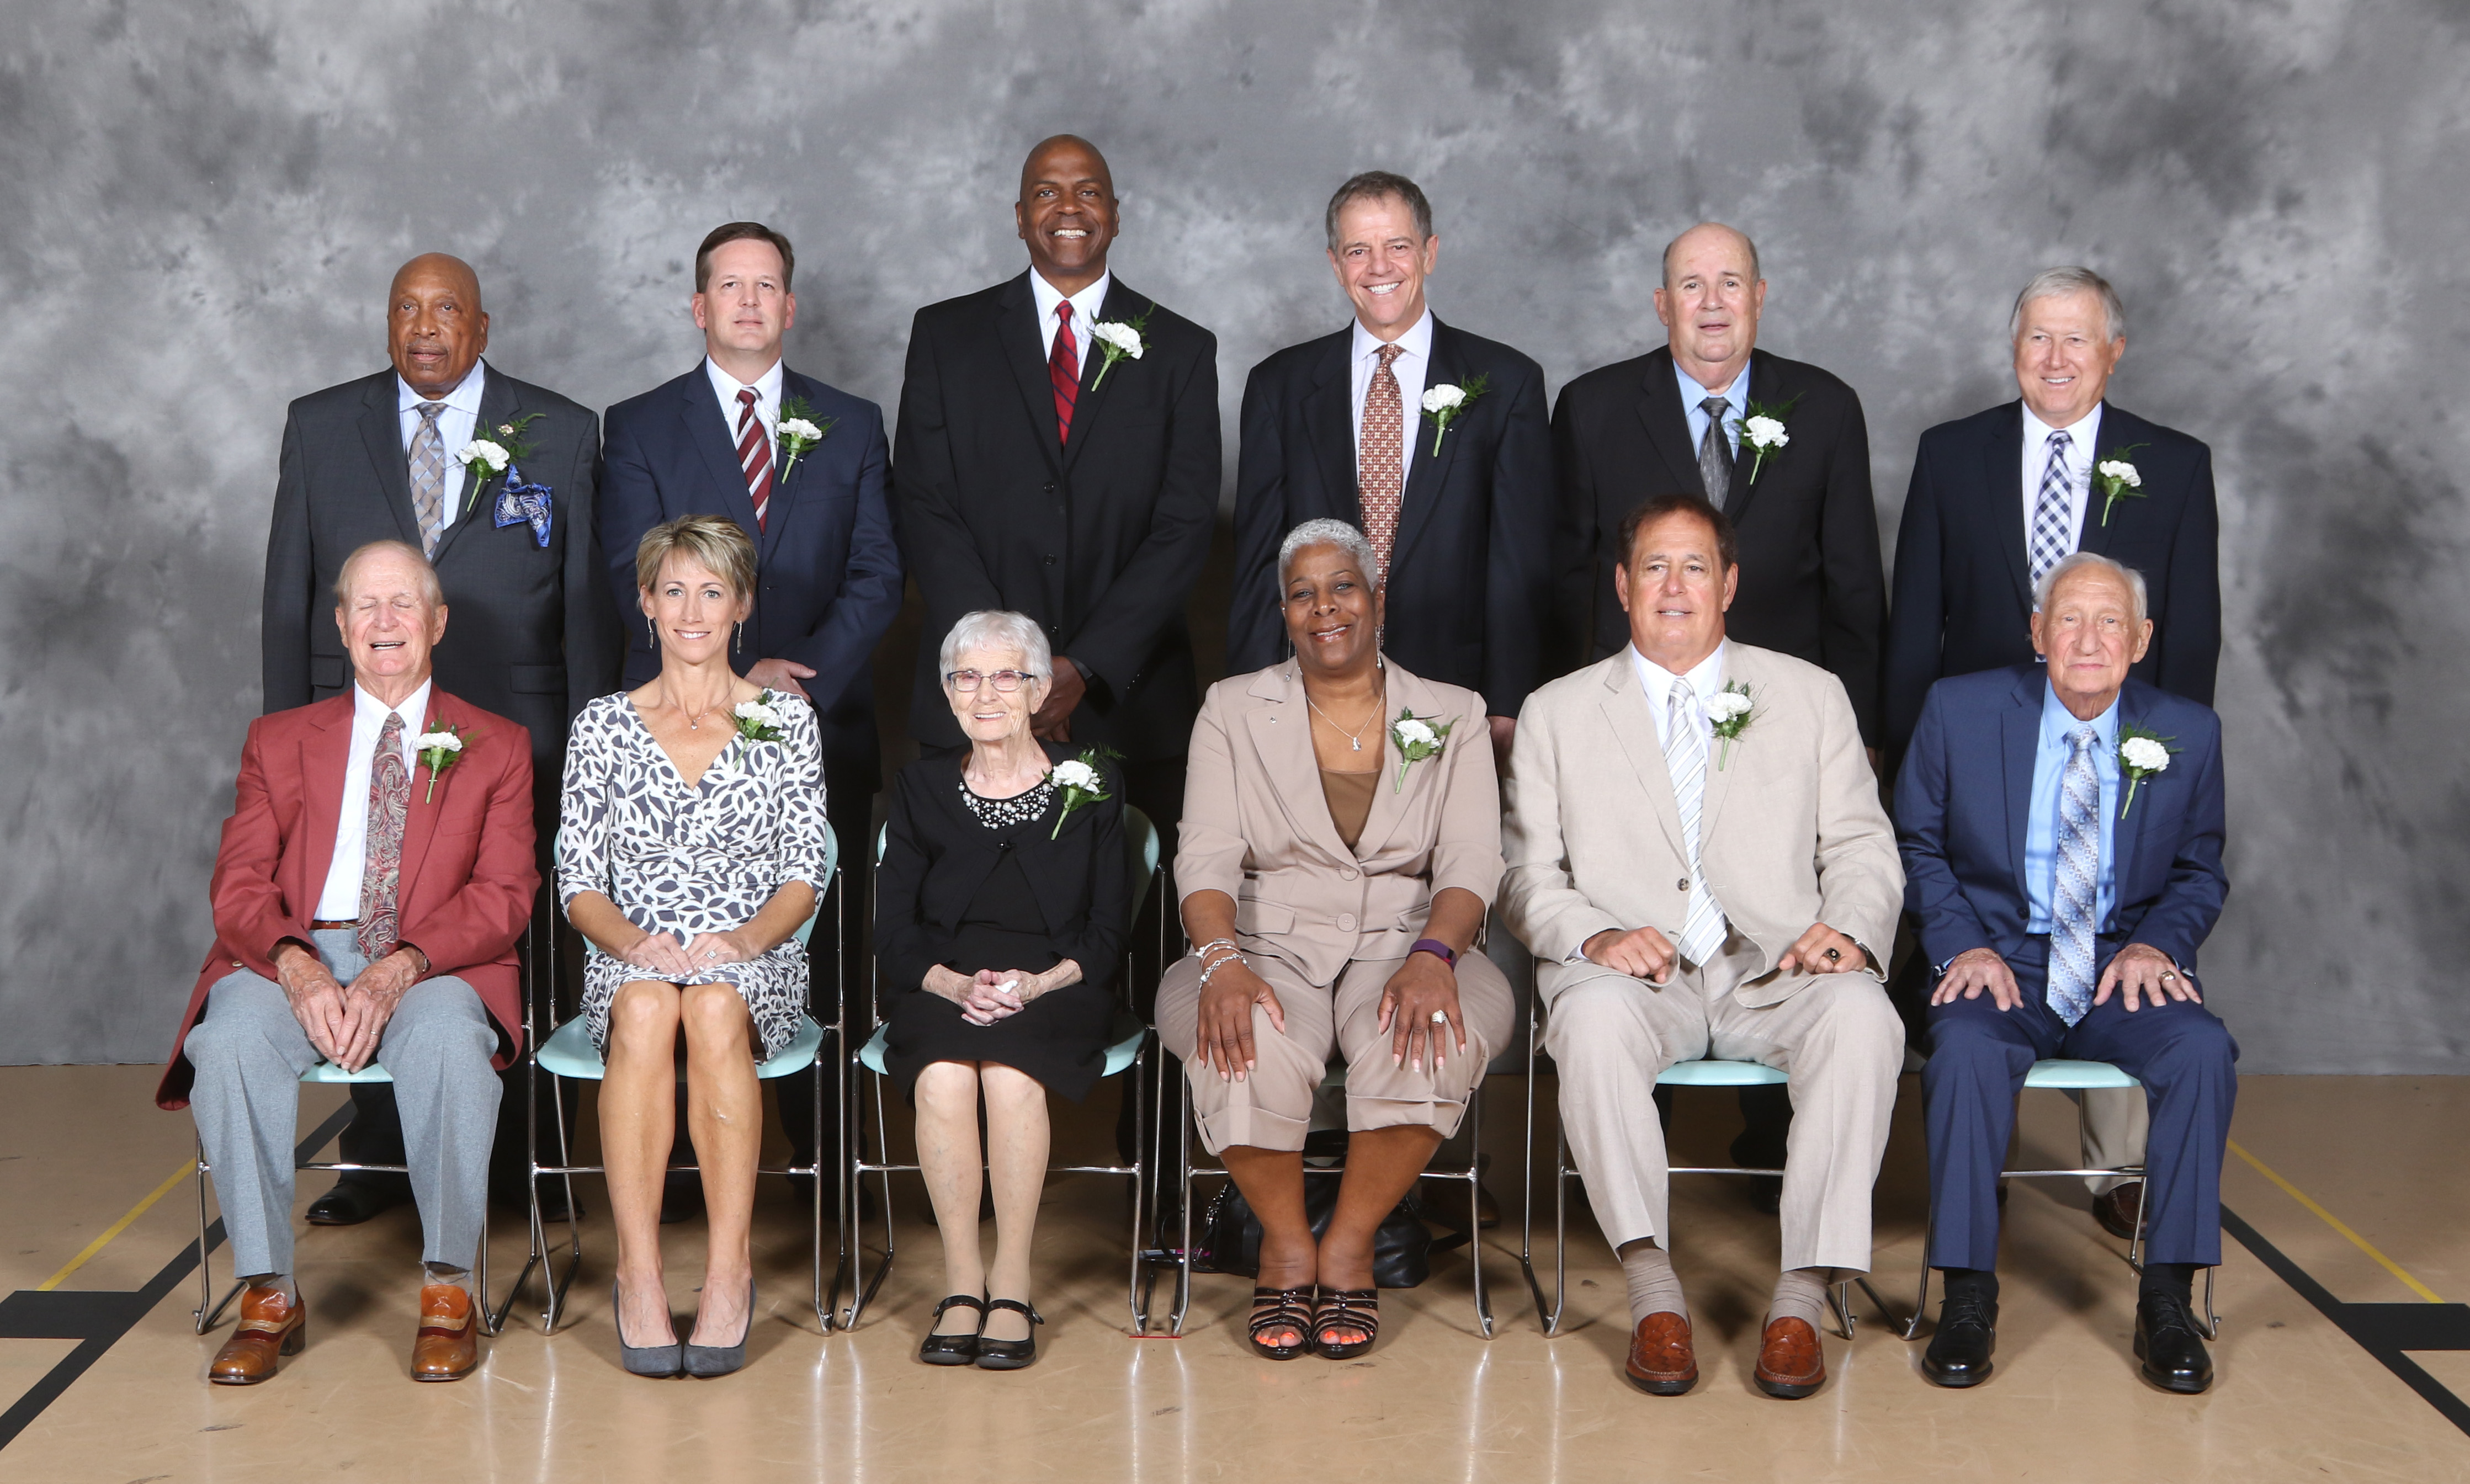 FAYETTE COUNTY SPORTS HALL OF FAME